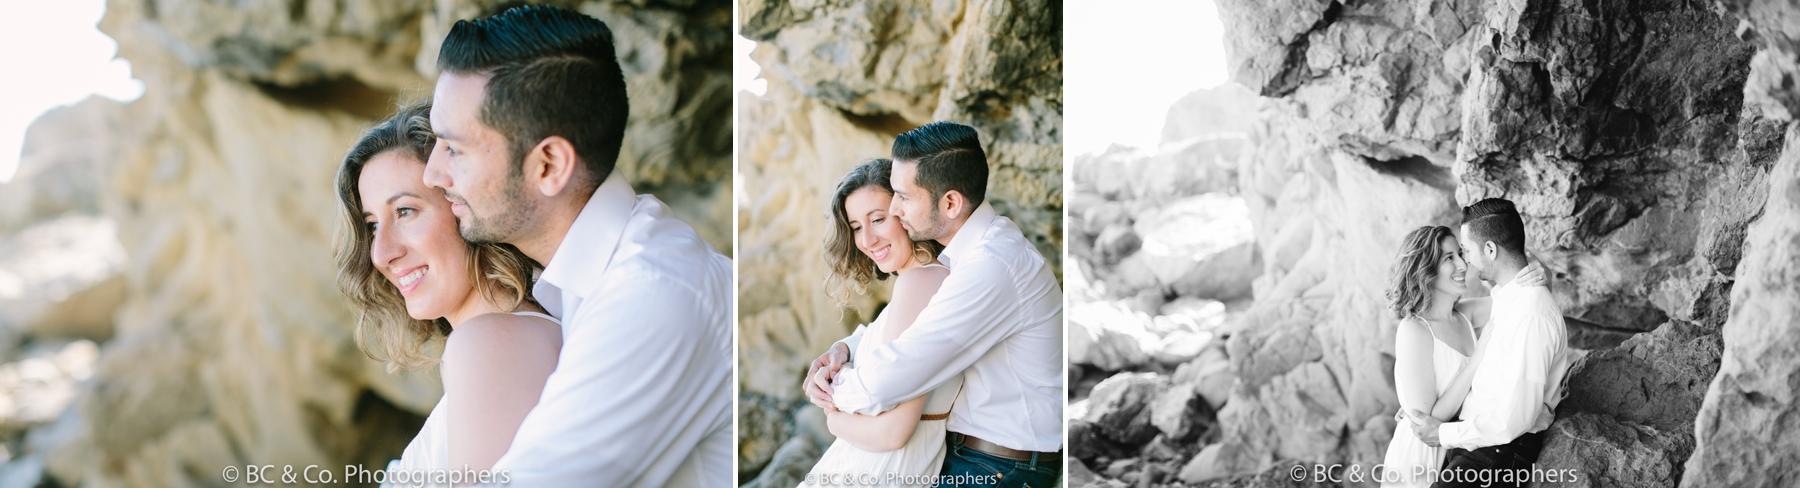 Orange-County-Wedding-Photography-Brianna-Caster-And-Co-Photographers 5